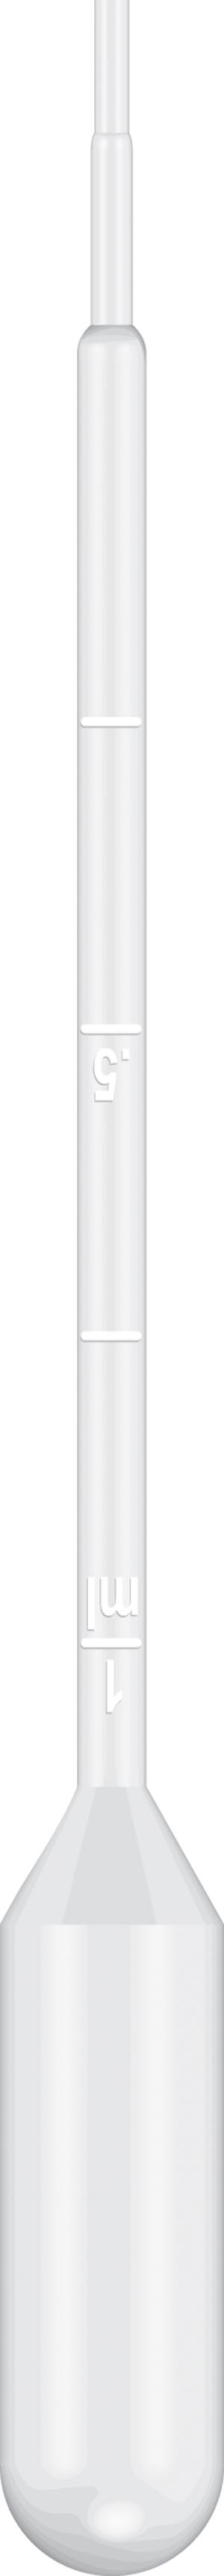 SIMPORT DROPETTE DISPOSABLE TRANSFER PIPETS : P200-52 PK                 $16.70 Stocked